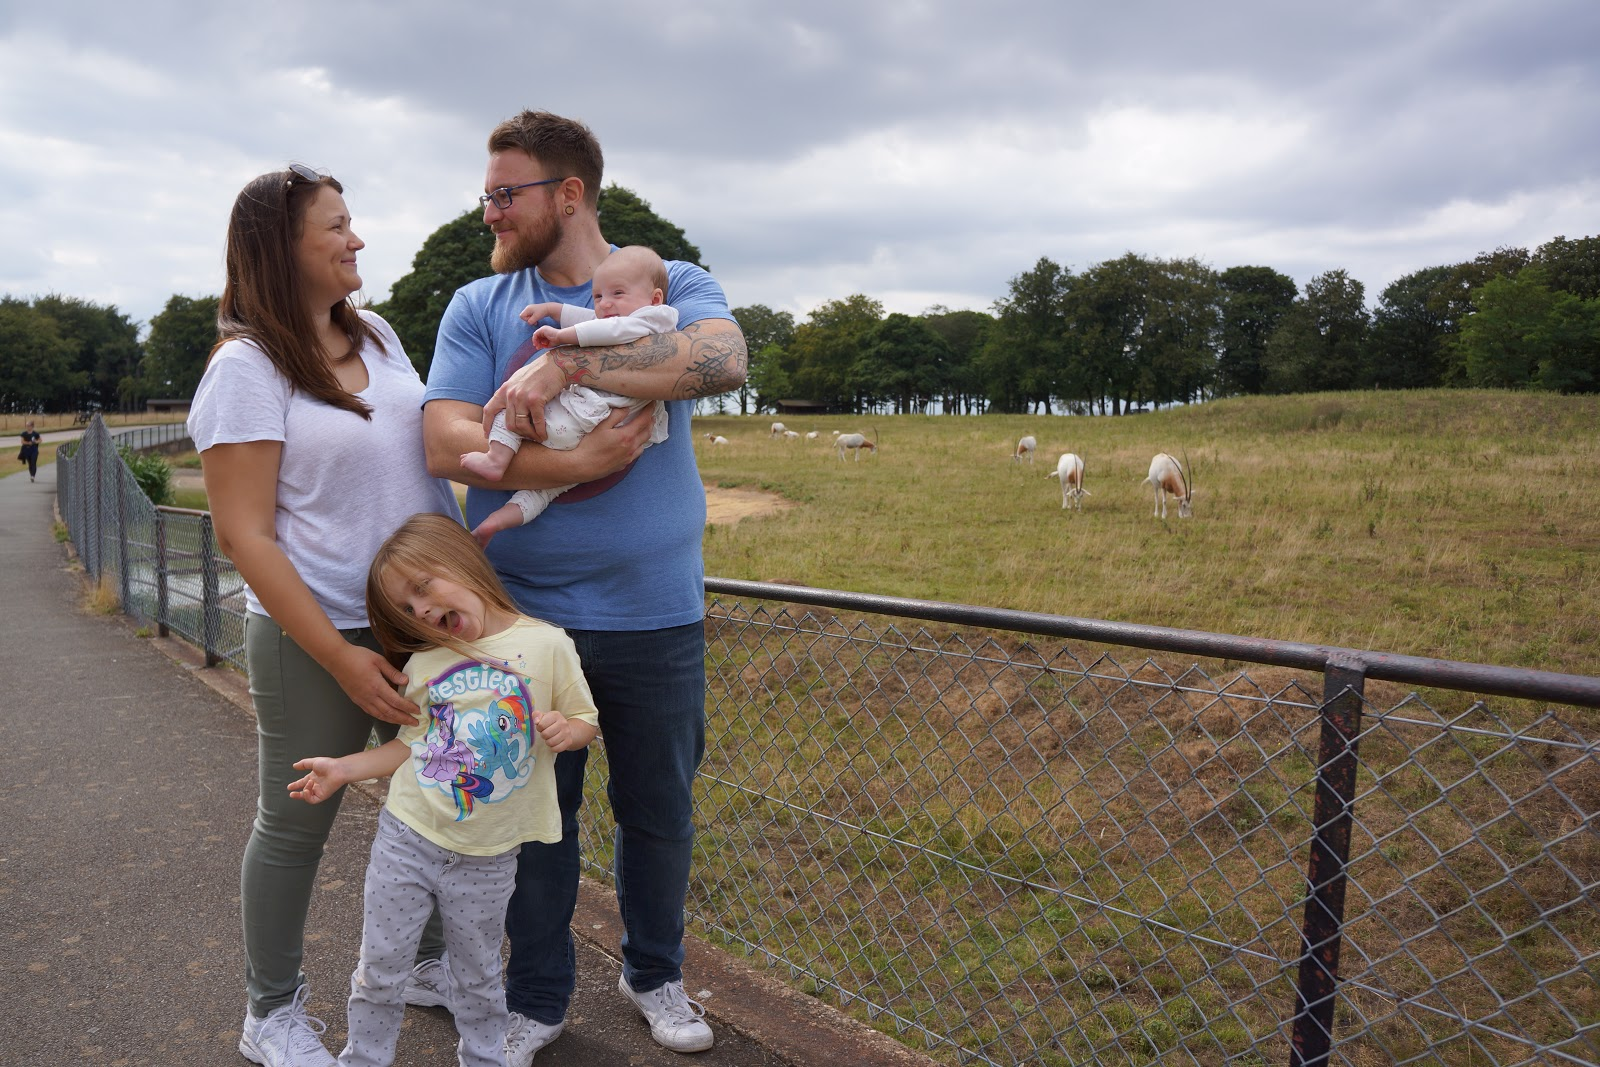 family picture at whipsnade zoo with antilopes